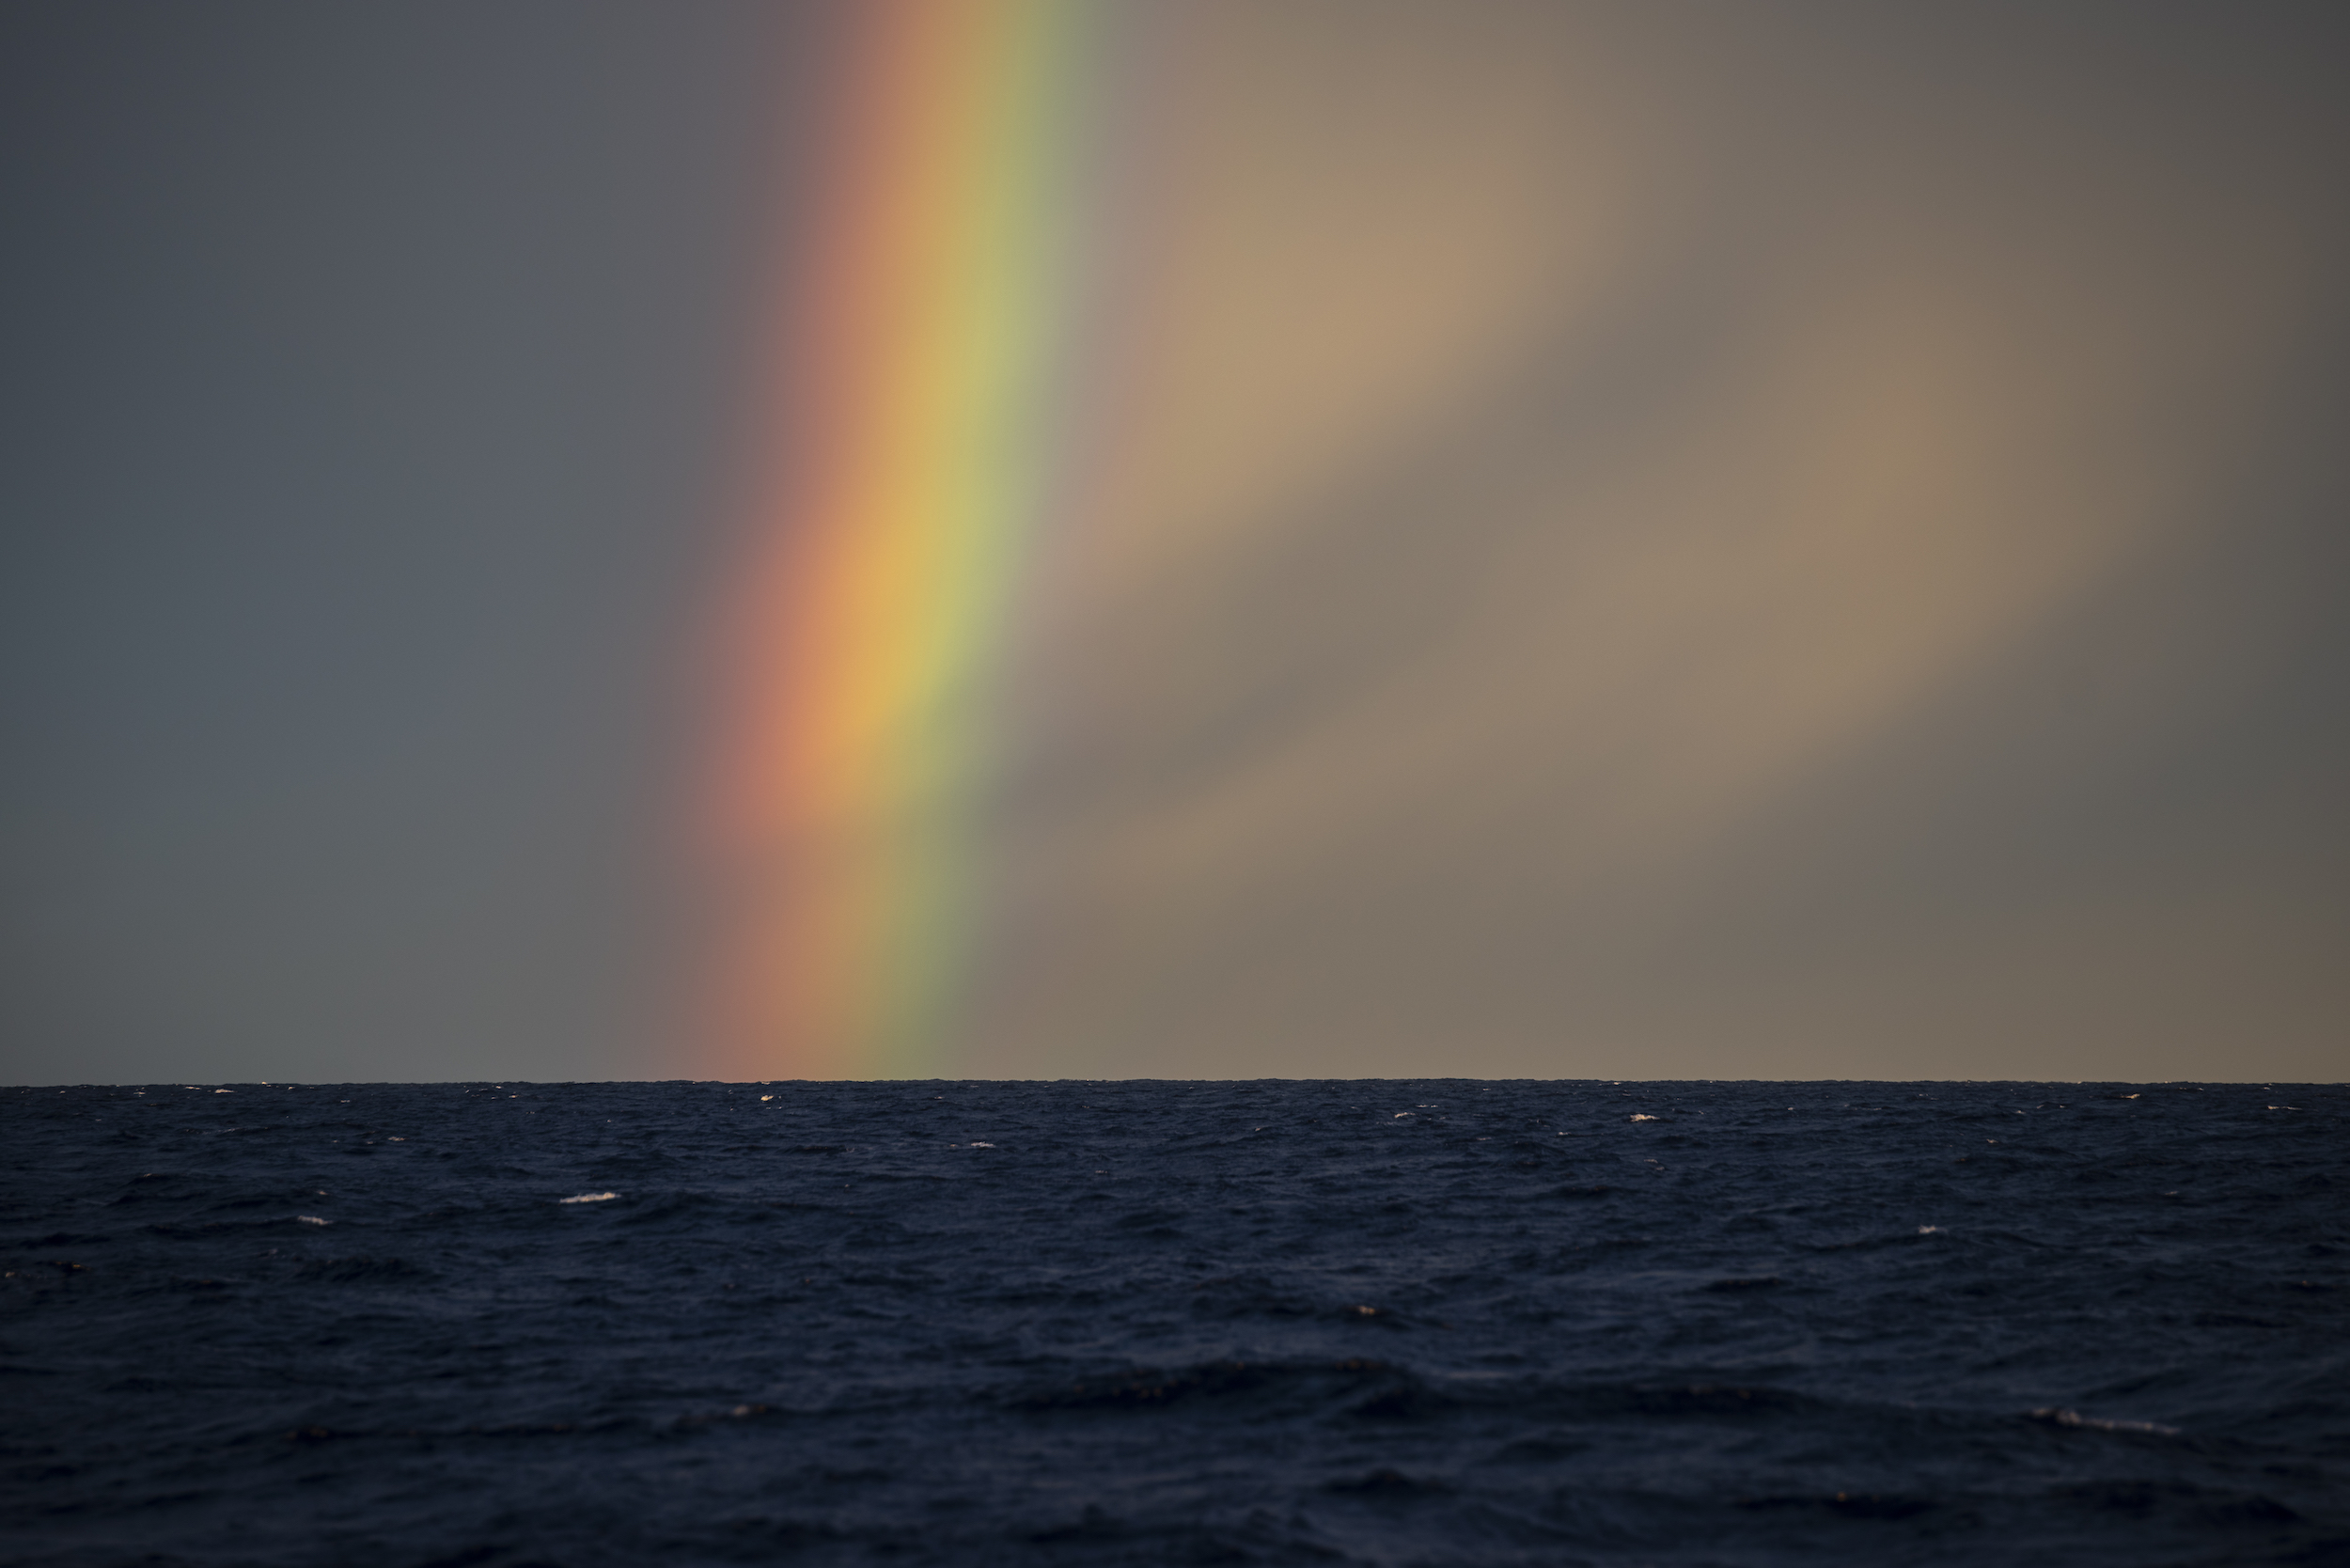 Natural beauty at sea always makes me think of my mom. This rainbow came to us just before landfall in Antigua and was even more beautiful in person.